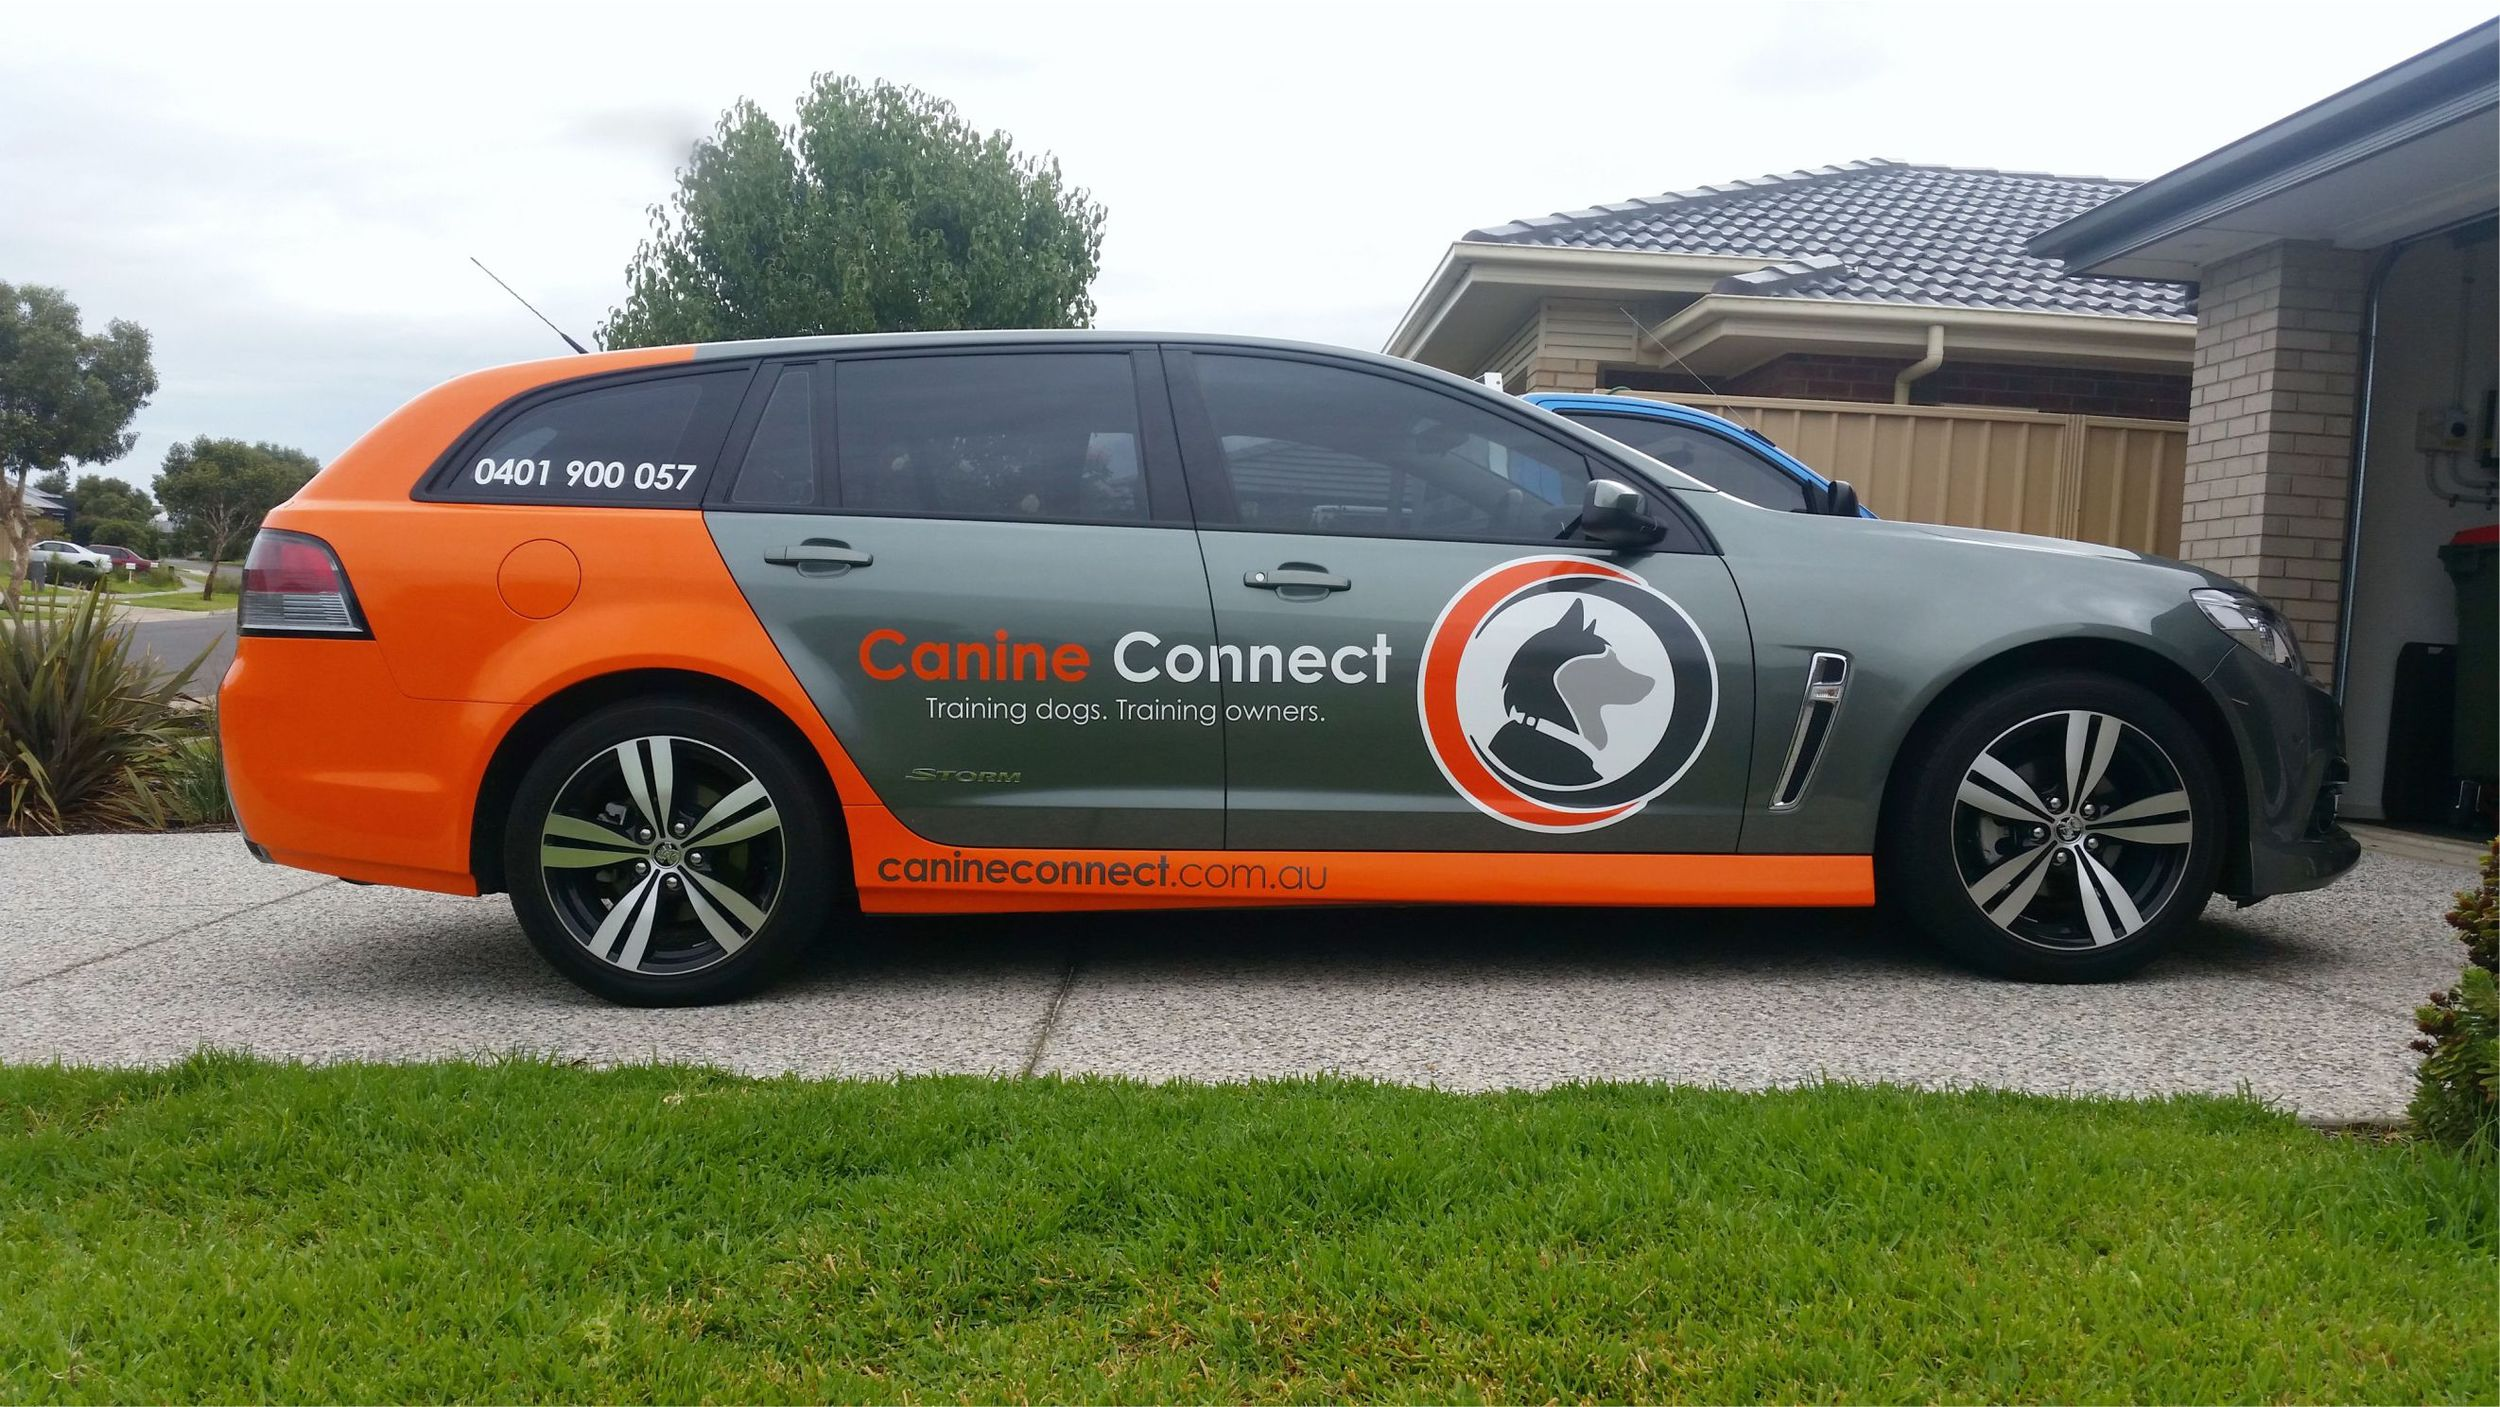 Canine Connect - SignColour - Sign Colour - Sign Adelaide - Signage Adelaide - Vehicle Signage Adelaide - Sign Lonsdale - Sign Aldinga - Sign Morphett Vale - Sign Victor Harbor - Vinyl wrap.jpg